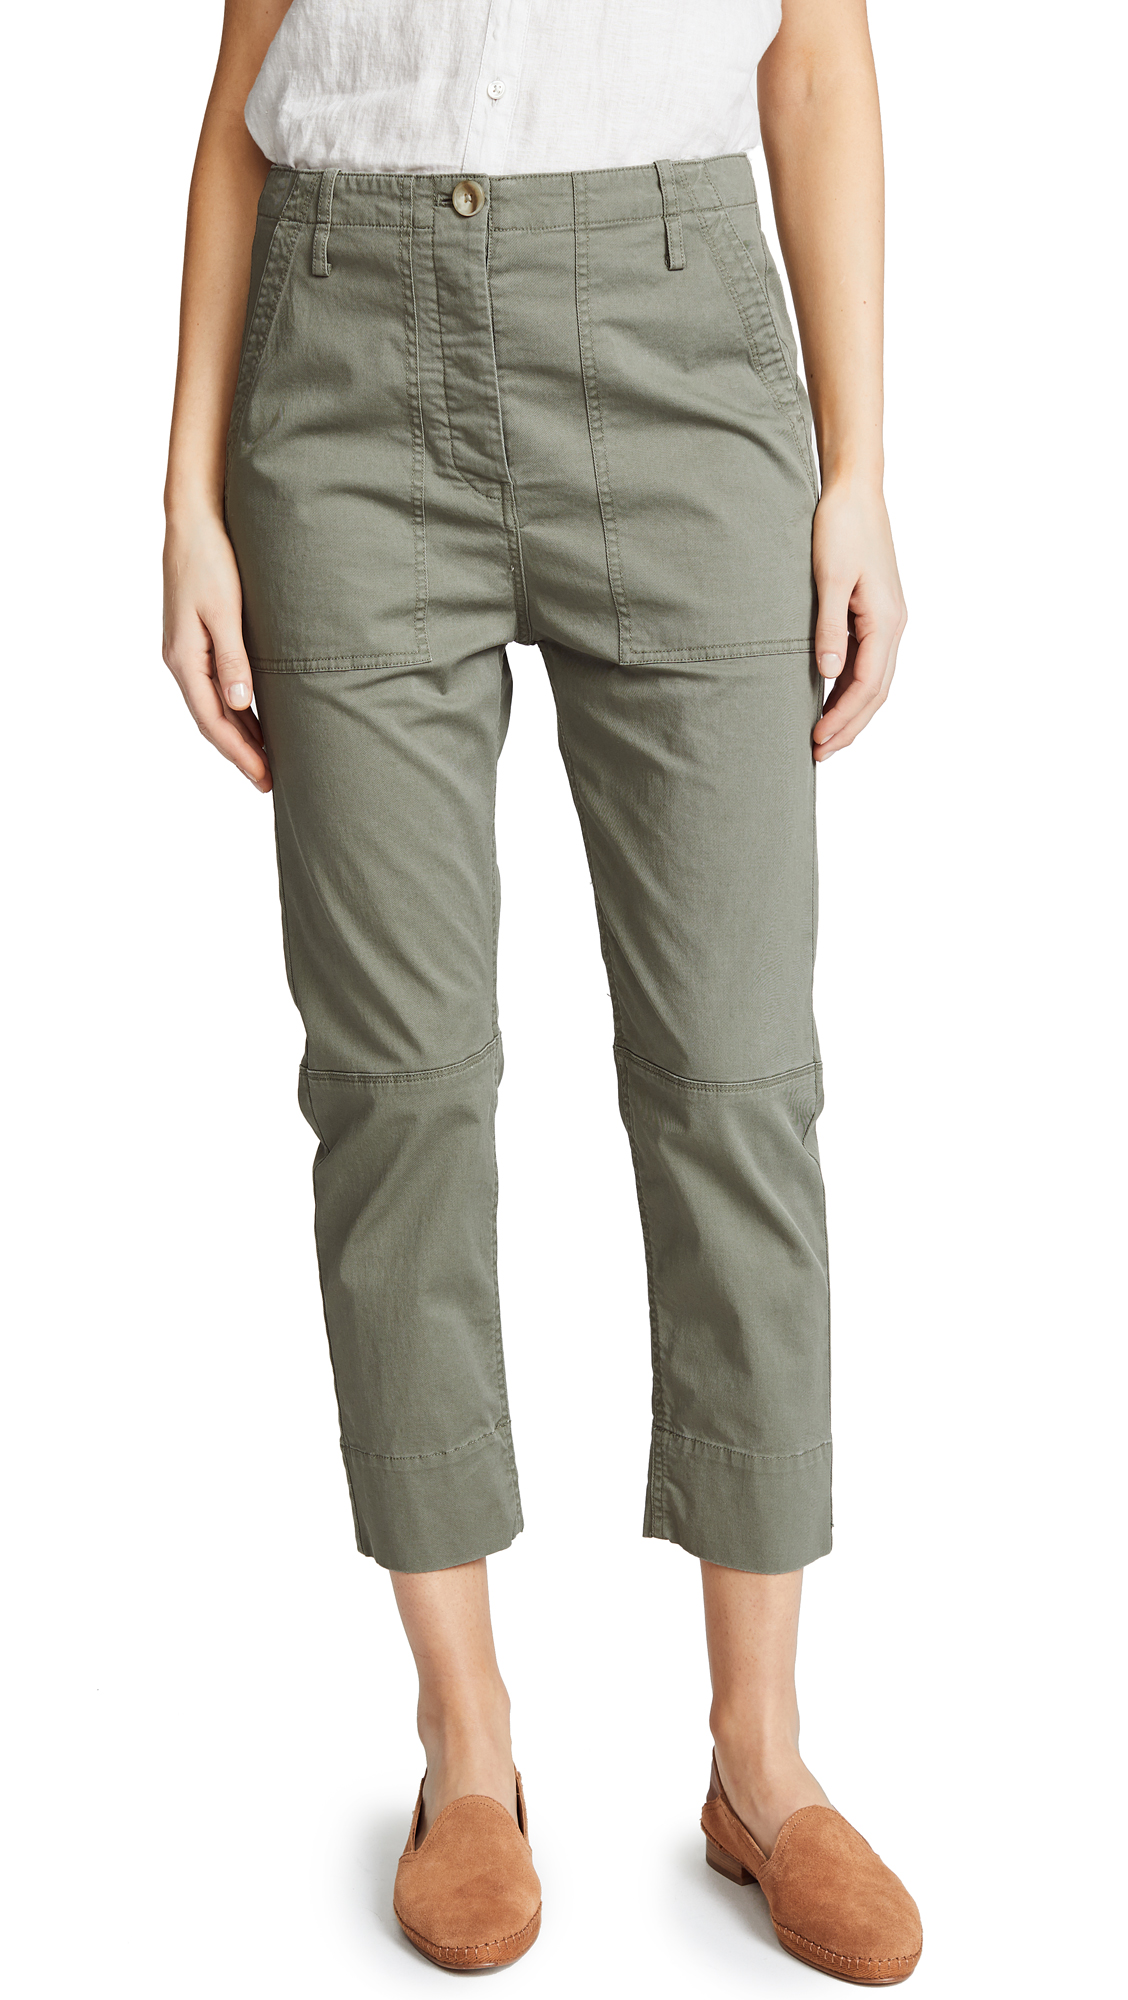 Theory Spring Crop Cargo Pants